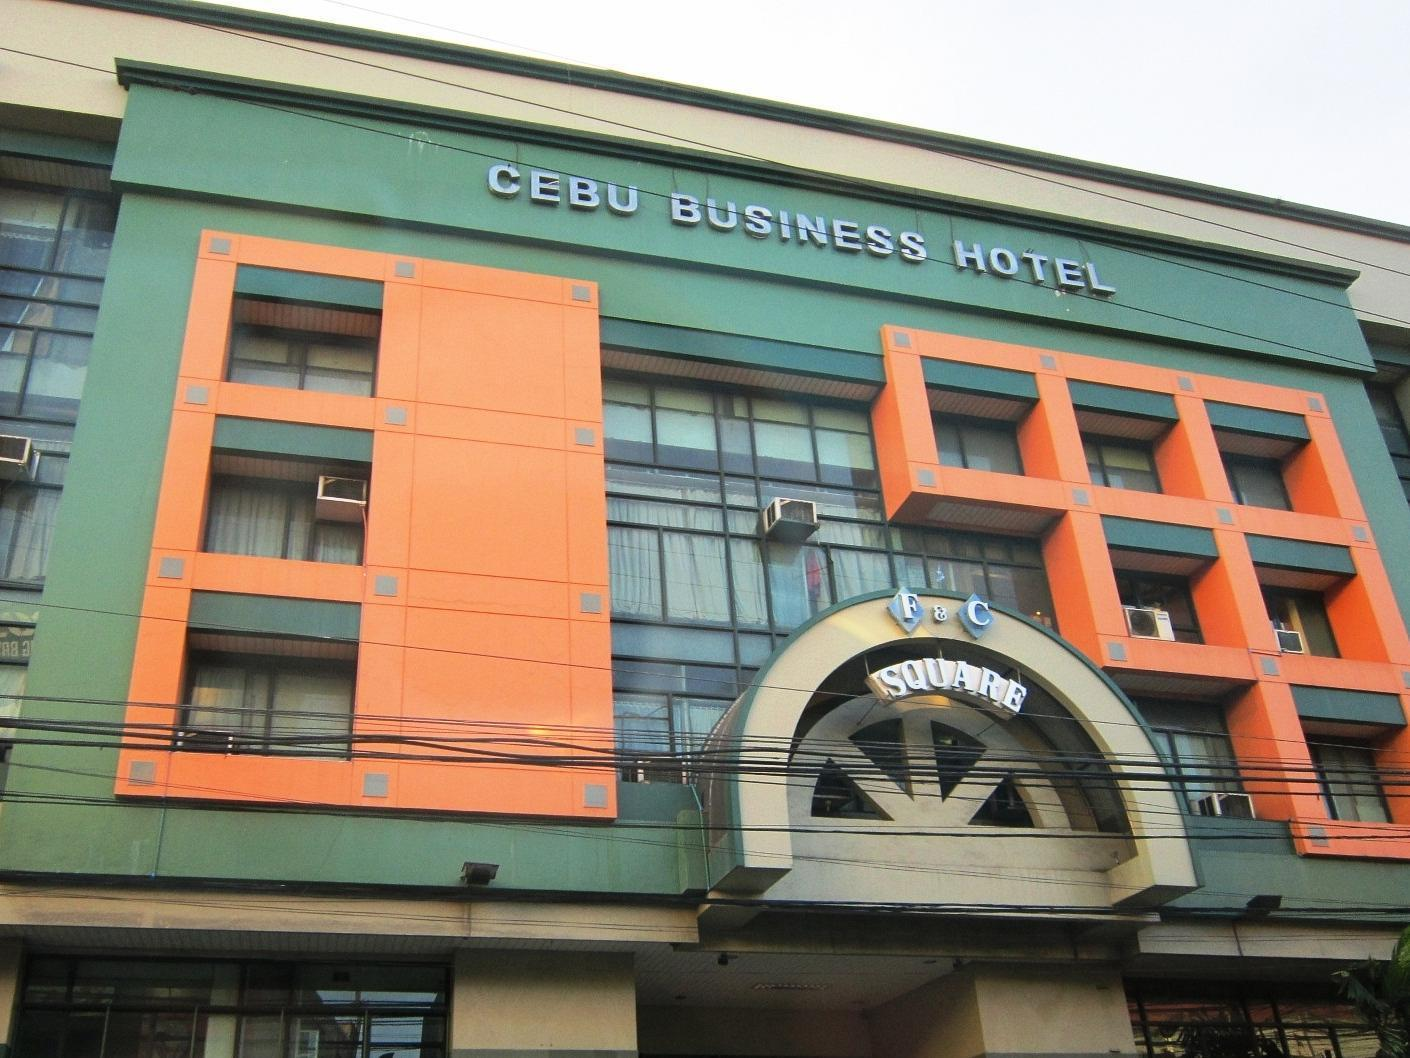 Cebu Business Hotel Sebu